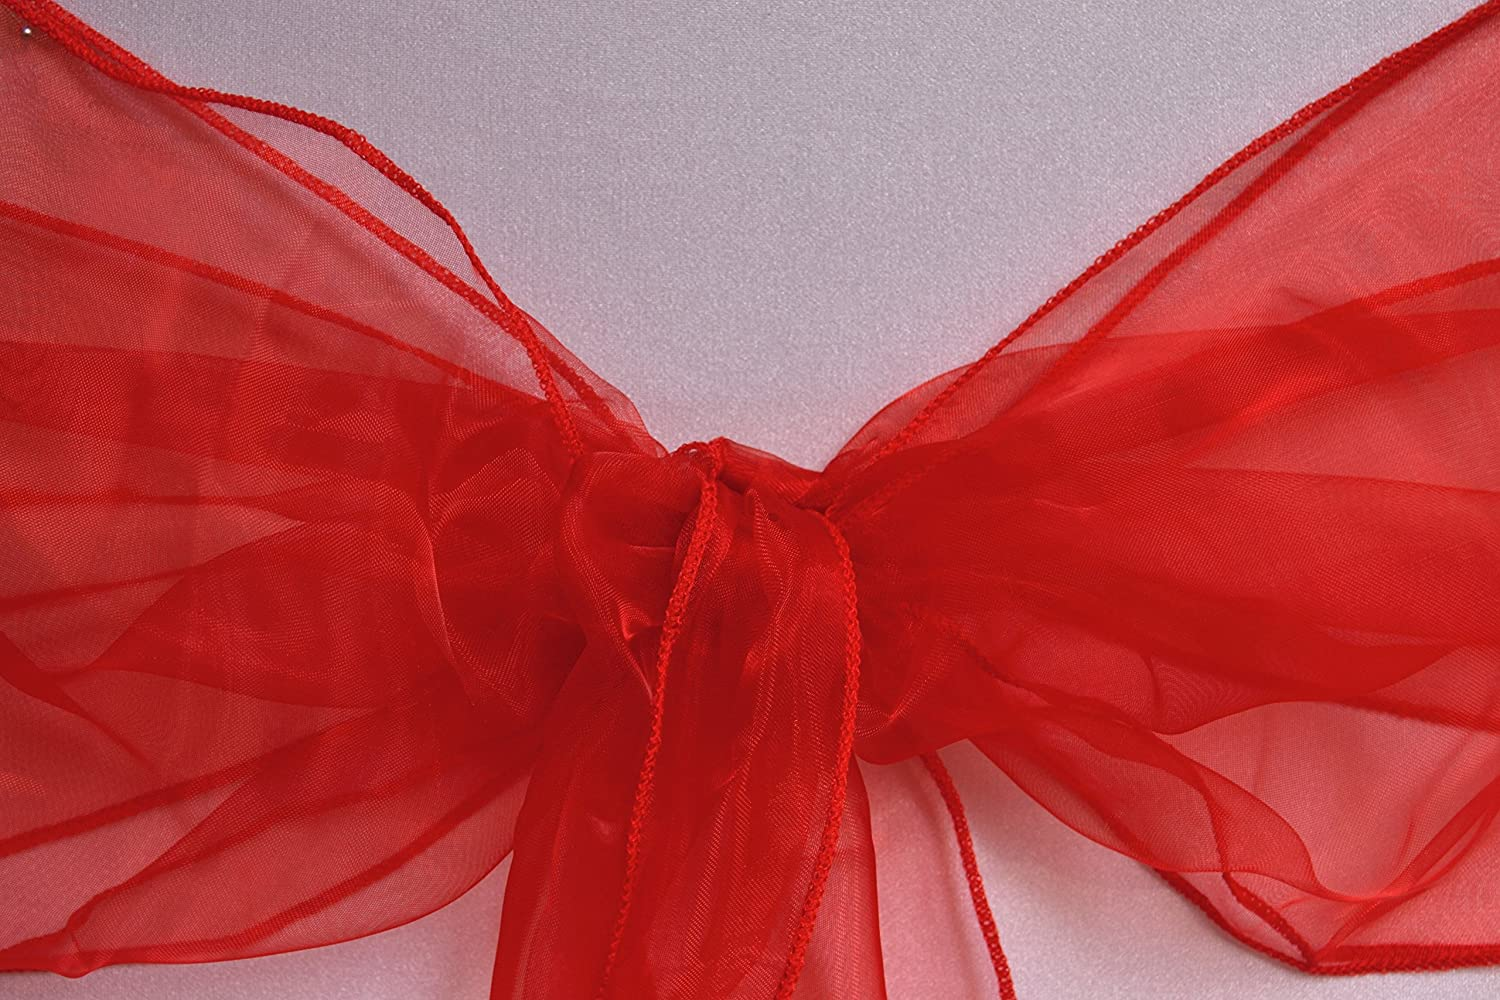 Red UK EVENT DECOR Pack Of 10 Organza Sash Chair Bows Cover for Wedding Reception Anniversary Party Bow Sashes ALL COLOURS AVAILABLE